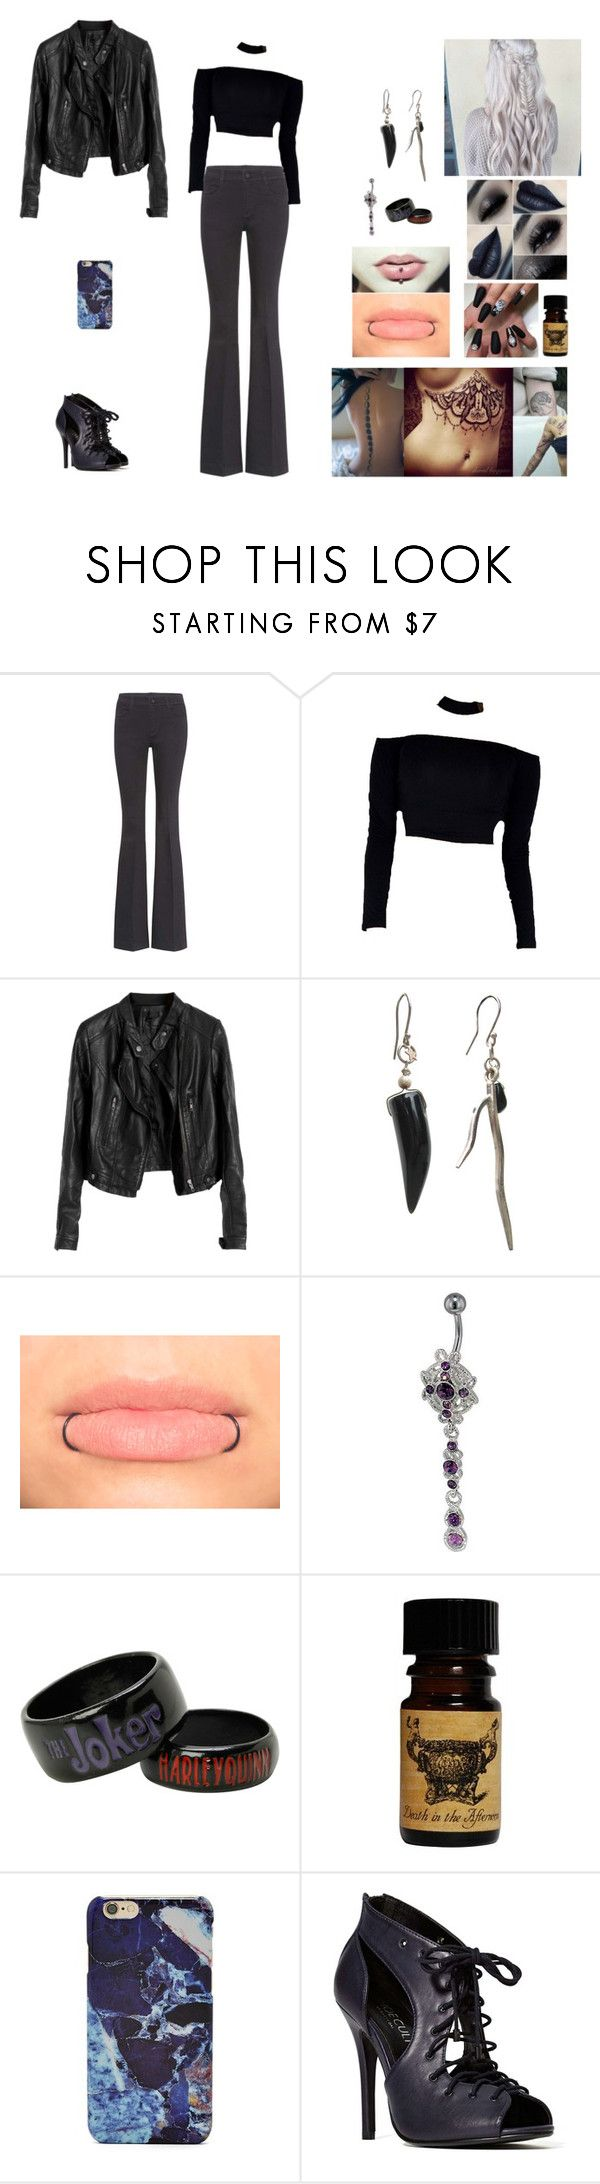 """""""Horror #1"""" by jazmine-bowman on Polyvore featuring STELLA McCARTNEY, Hayden-Harnett, Hot Topic, Forever 21 and Shoe Cult"""